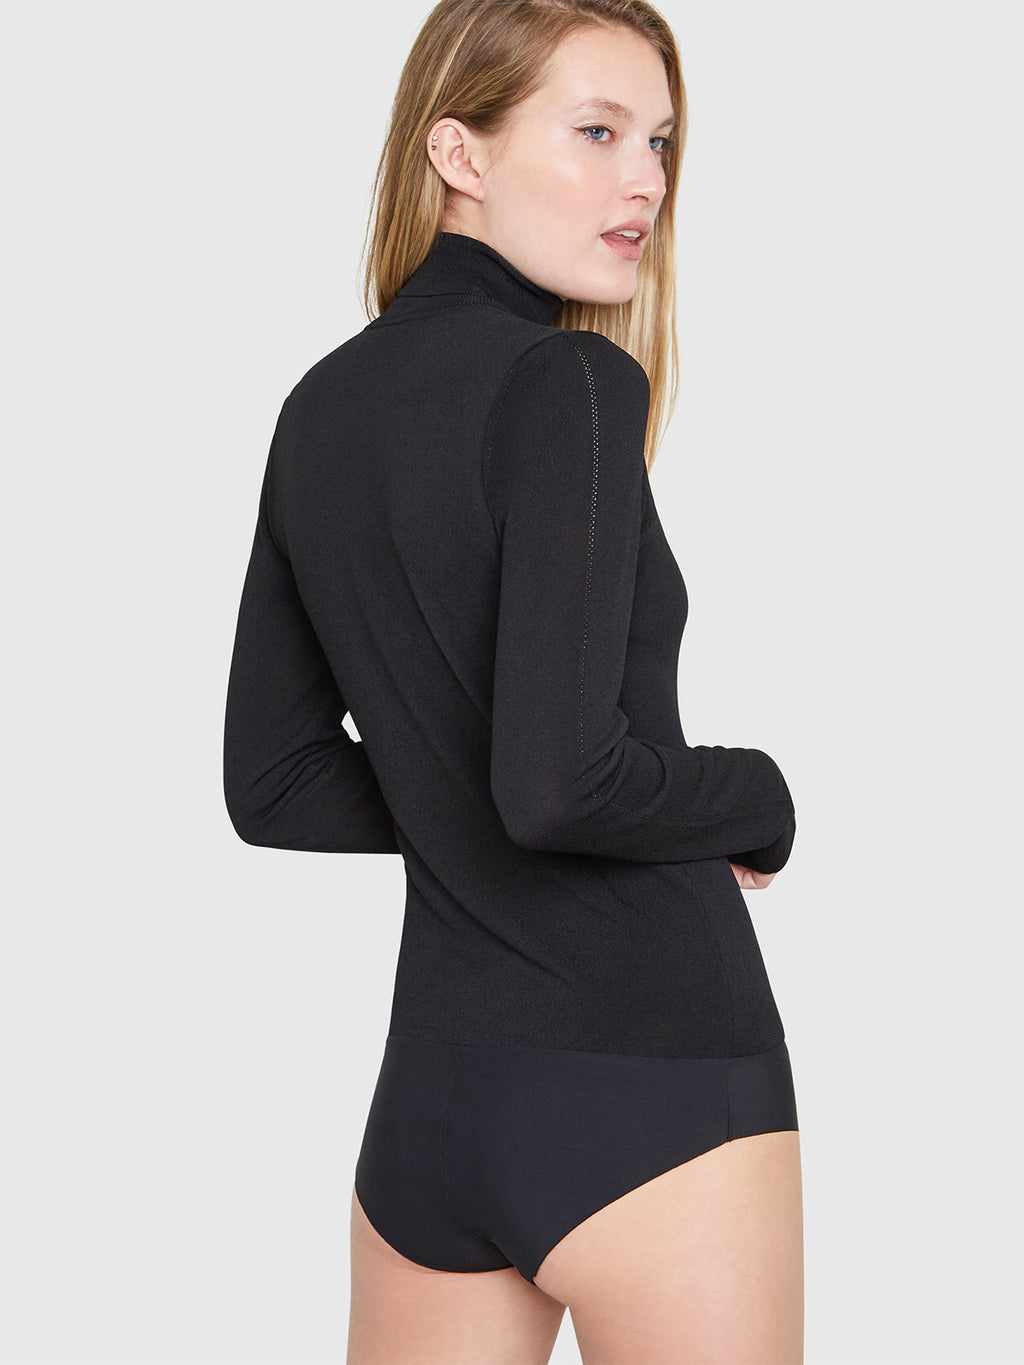 Mira Turtleneck Bodysuit | Black